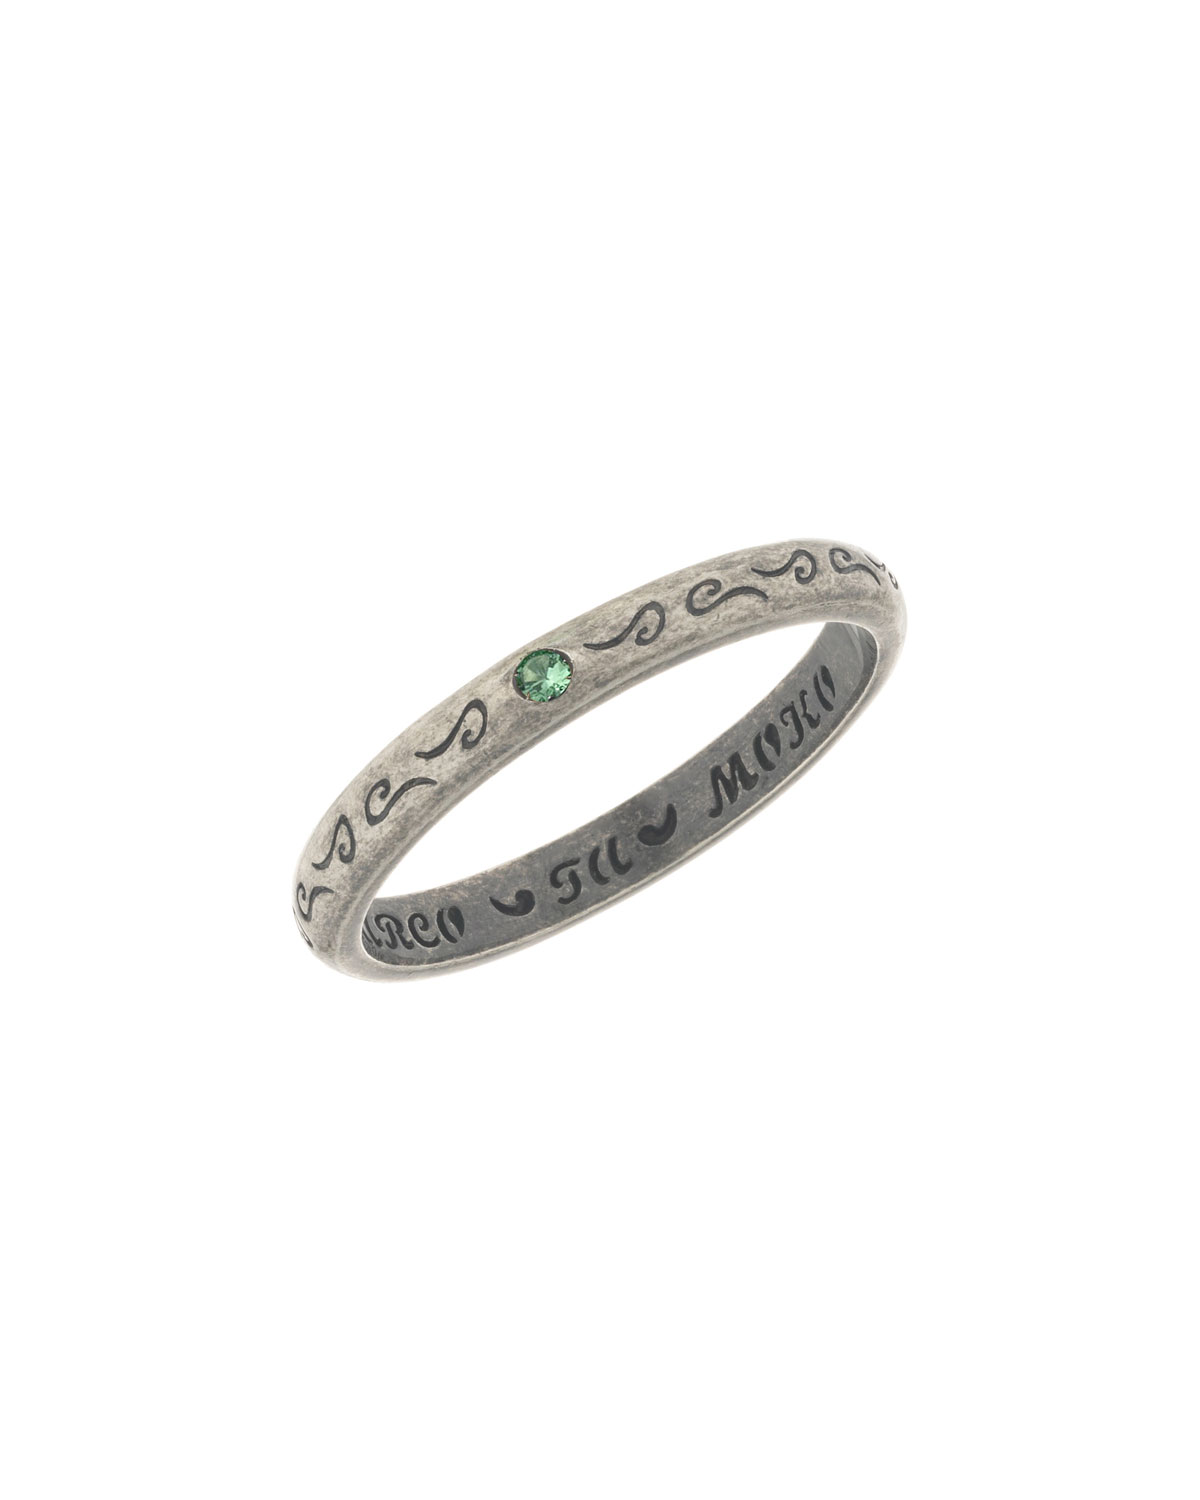 MARCO TA MOKO Men'S Flat Silver Band Ring With Green Sapphire, Size 10.5